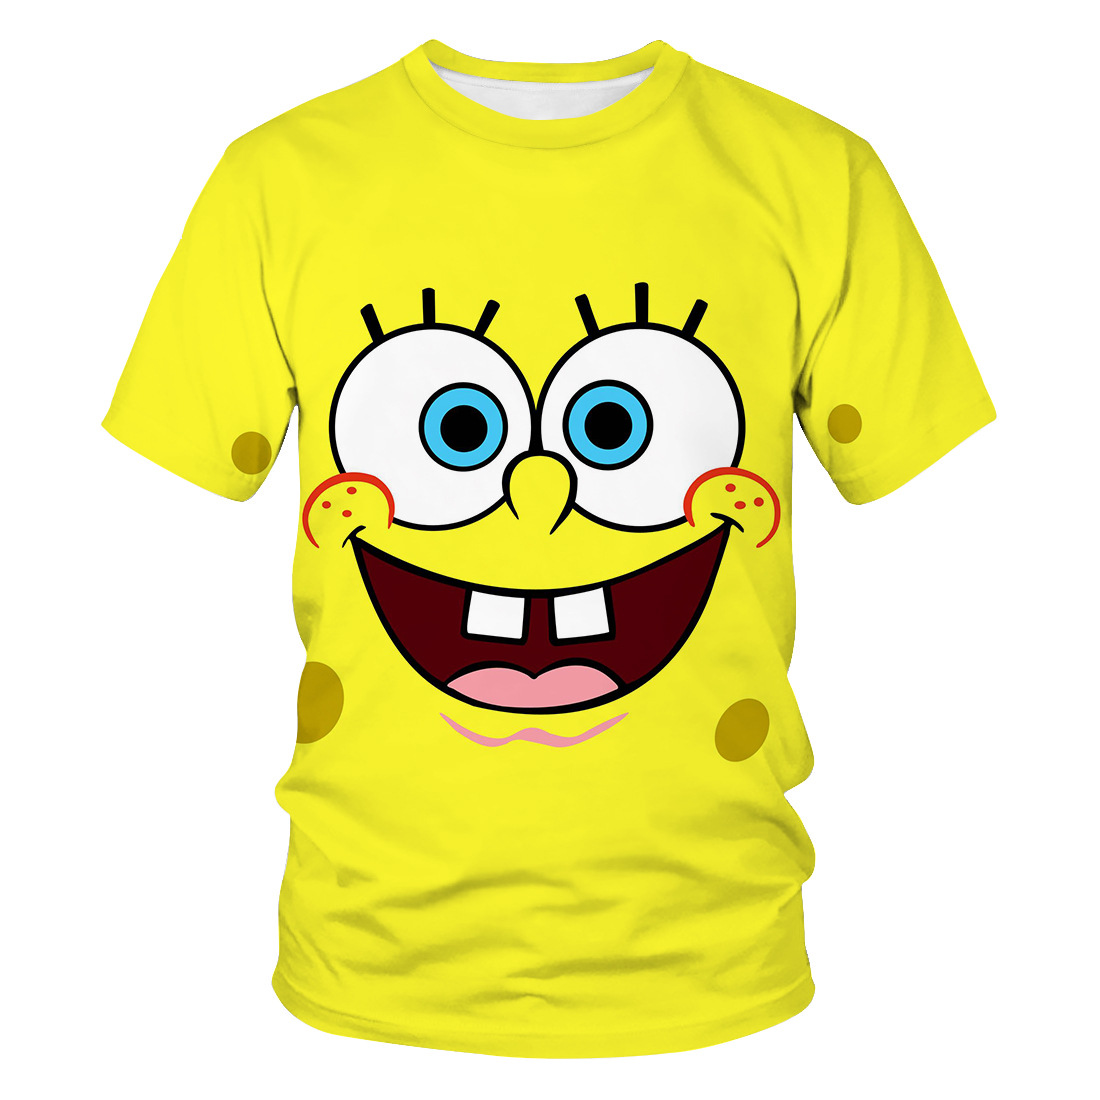 Summer New Children 3D T-shirt  Cute SpongeBob T-shirt Boys 3DT Shirt Girls 3DT-Shirt Cute Casual Top T-shirt